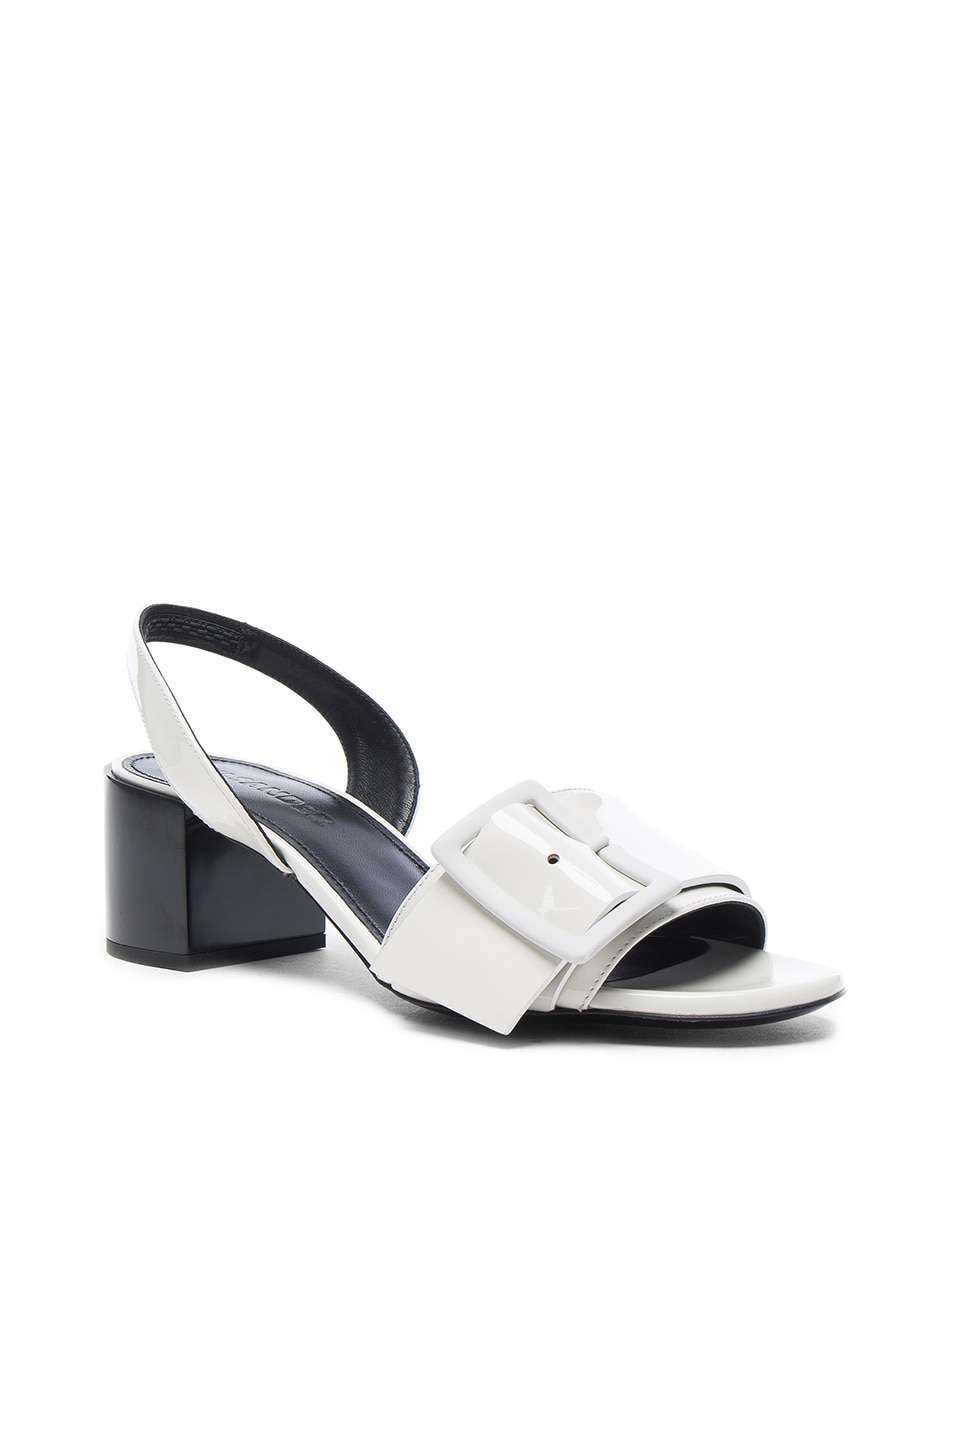 Image 2 of Jil Sander Patent Leather Heels in Riso & Nero